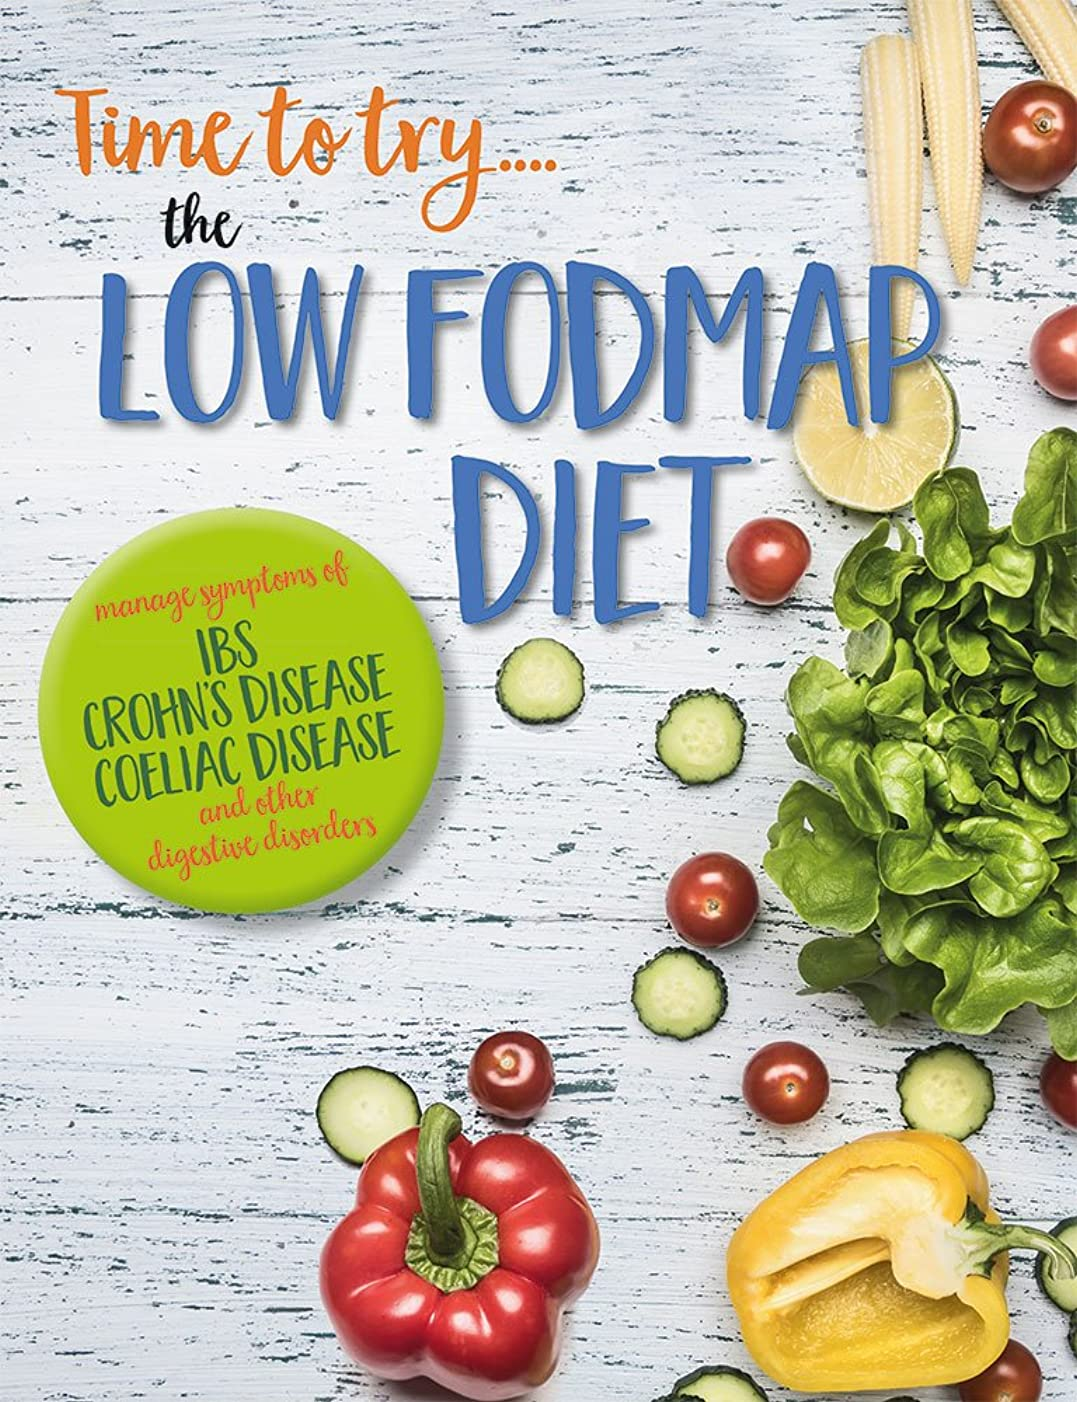 Time to try...the low FODMAP diet: Complete plan for managing symptoms of IBS, Crohn's disease, Coeliac disease and other digestive disorders (English Edition)